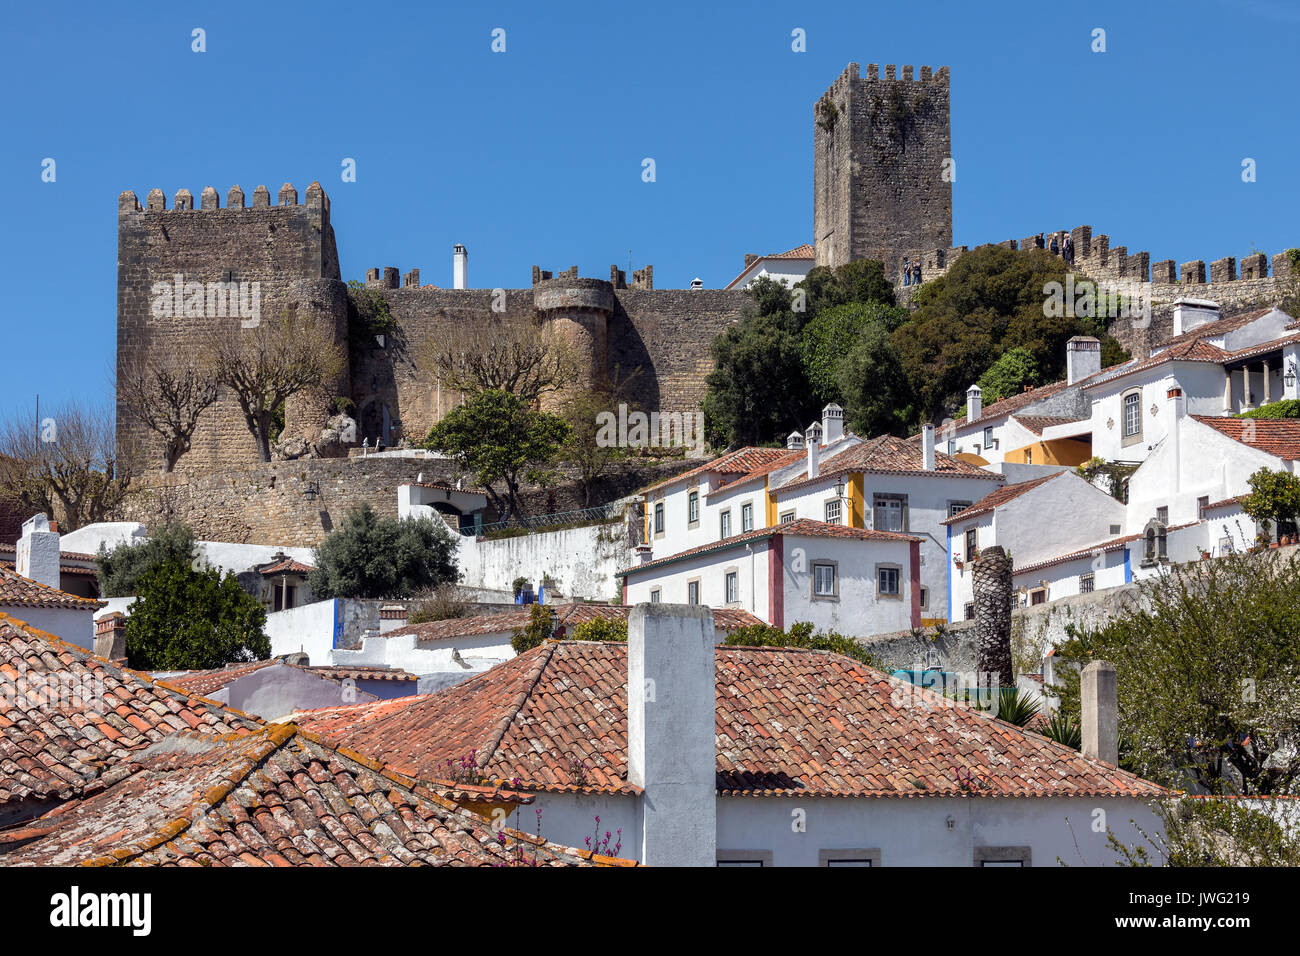 The medieval castle in the walled town of Obidos in the Oeste region of Portugal. - Stock Image